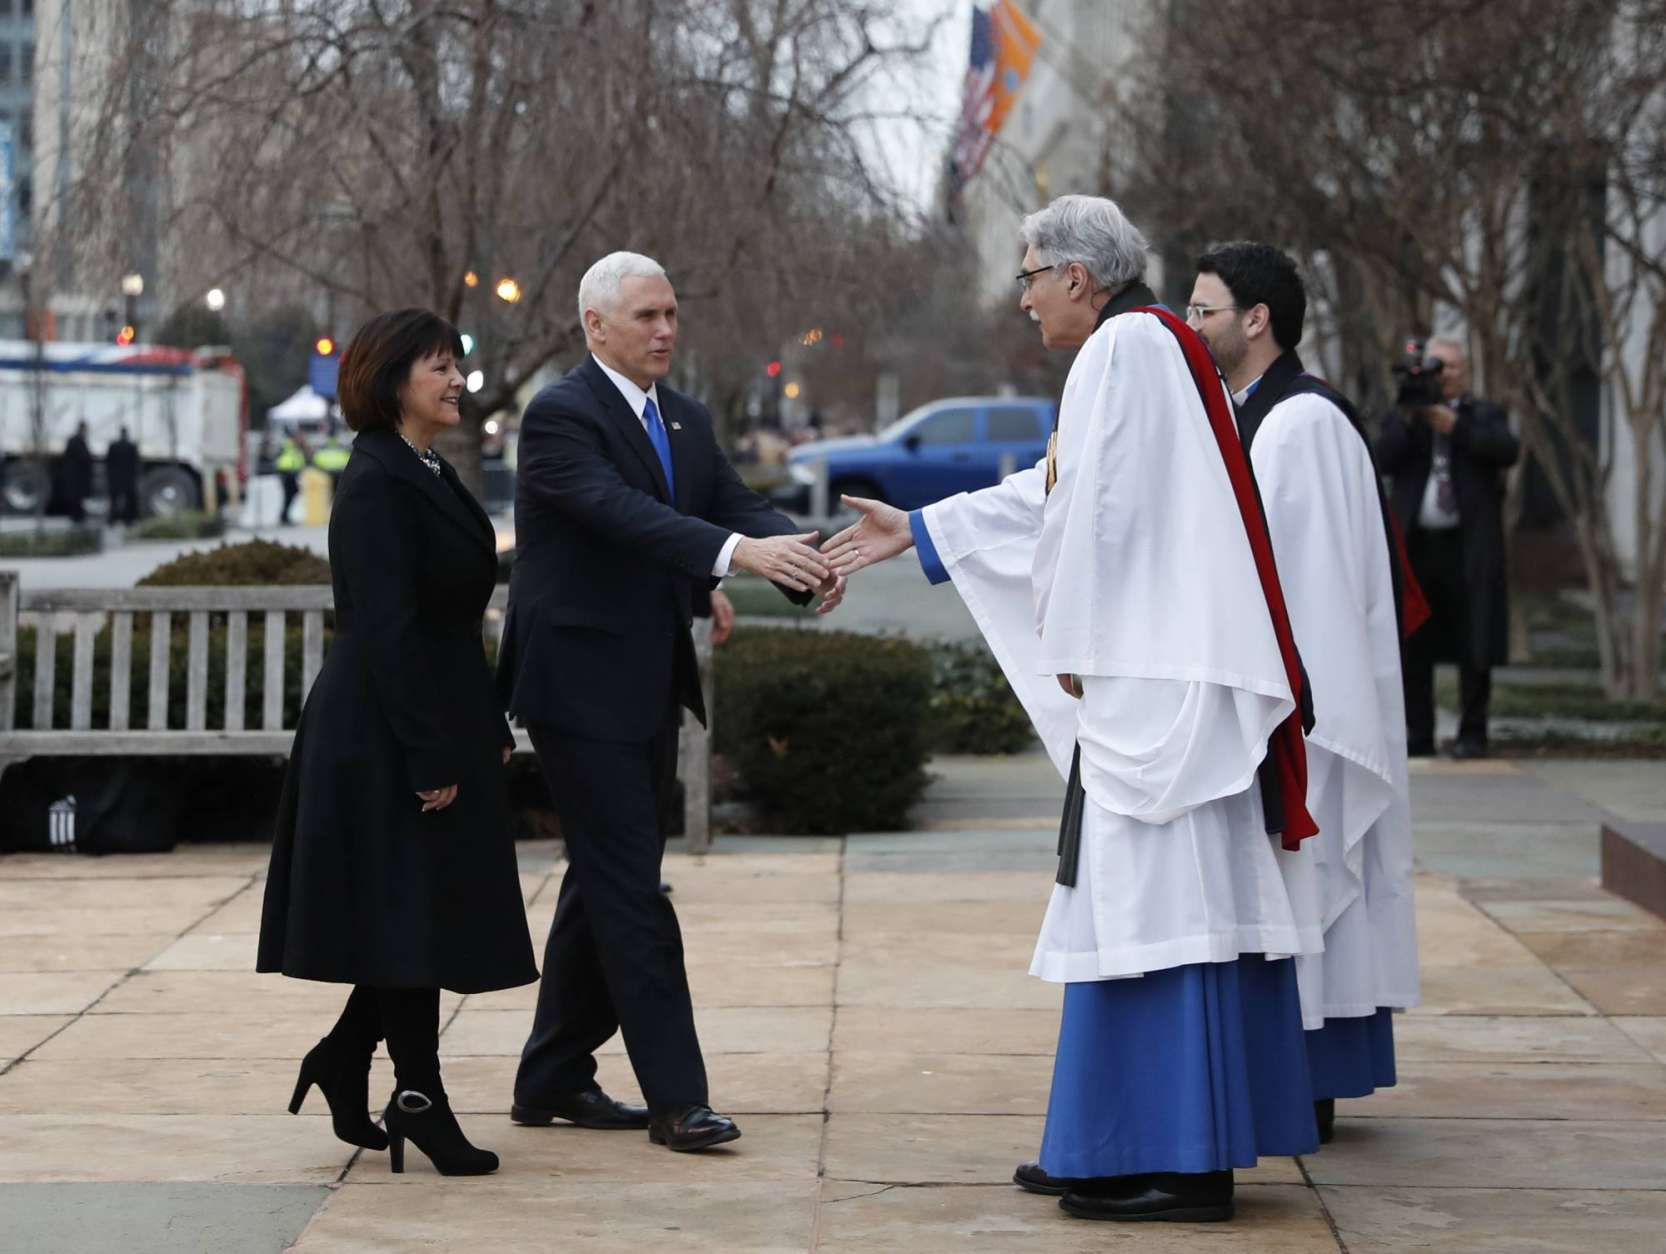 Rev. Luis Leon greets Vice President-elect Mike Pence and his wife Karen as they arrive for a church service at St. John's Episcopal Church across from the White House in Washington, Friday, Jan. 20, 2017, on Donald Trump's inauguration day. (AP Photo/Alex Brandon)